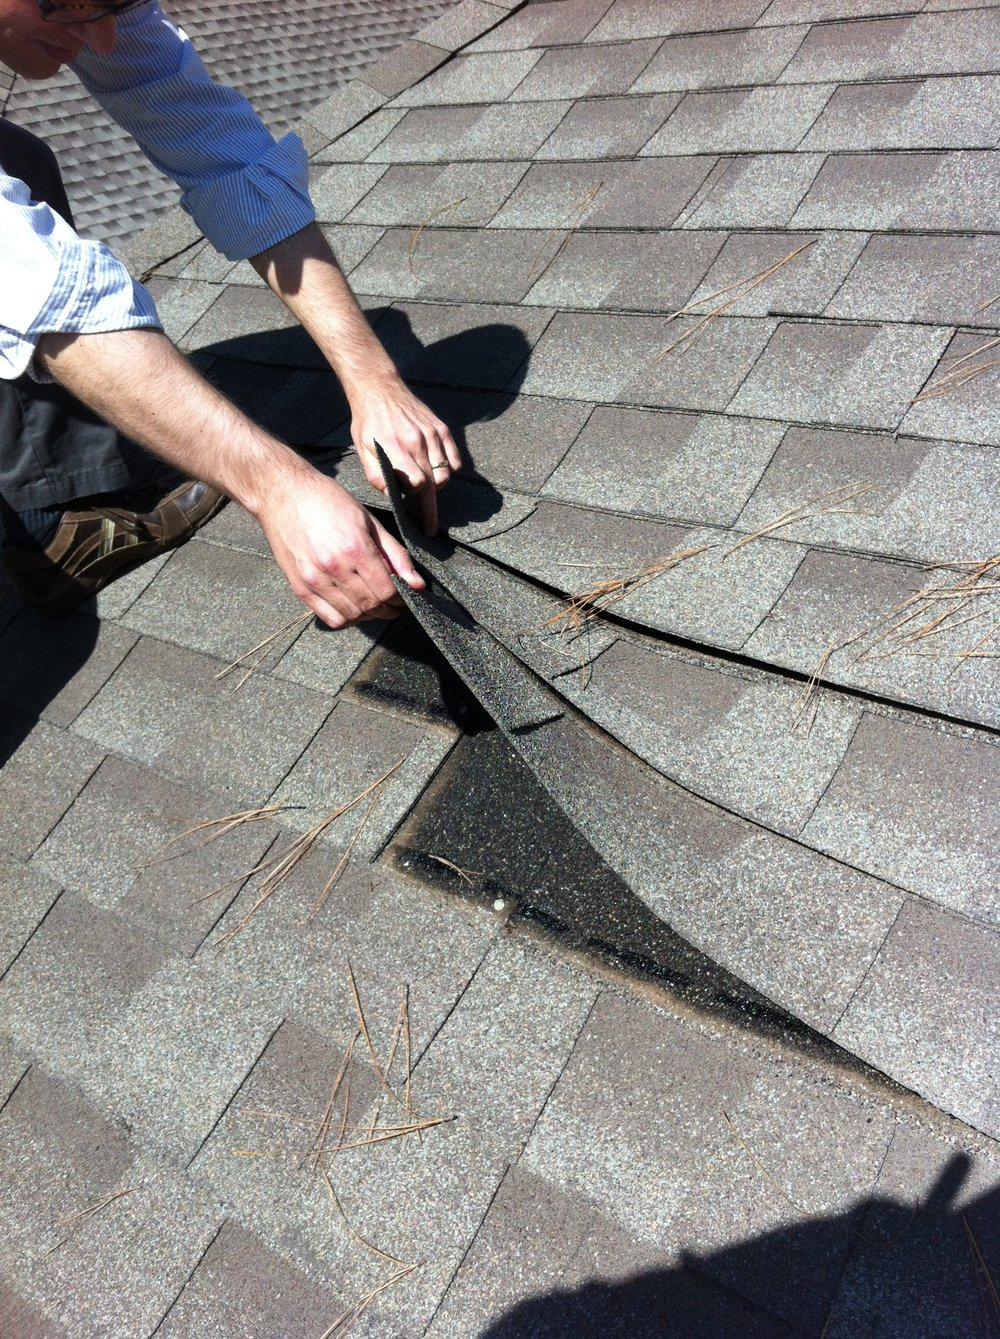 wind damaged shingles pulled through the fastener